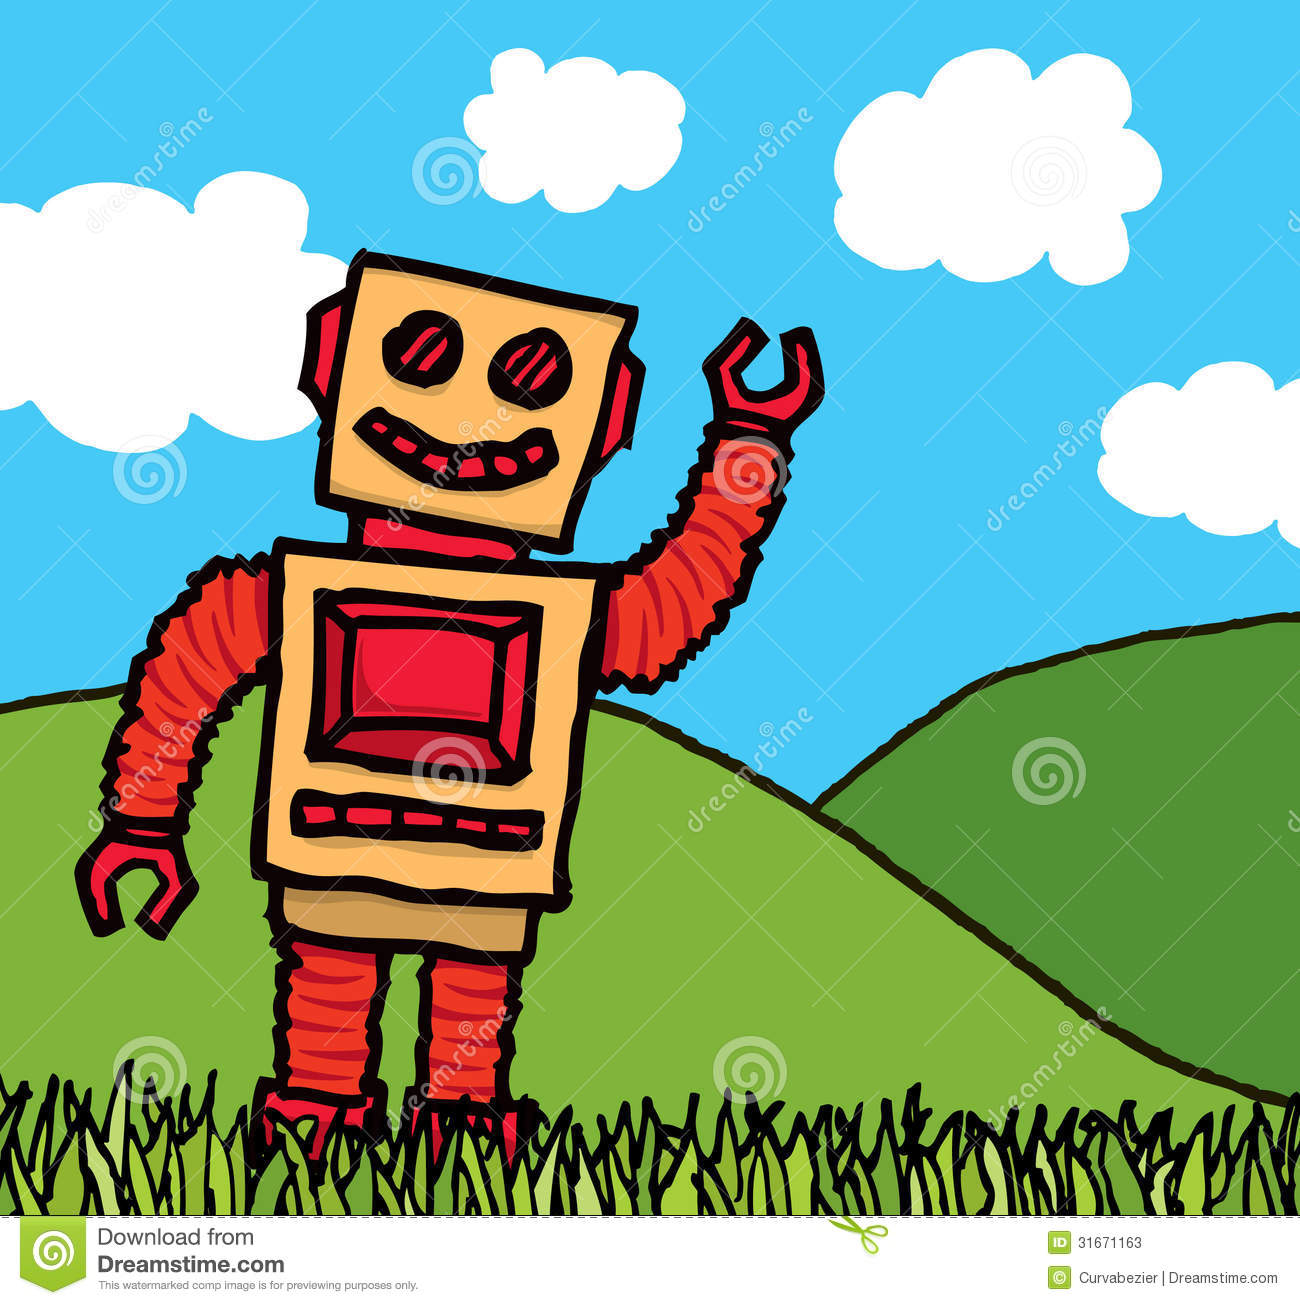 Smiling Robot coloring page | Free Printable Coloring Pages